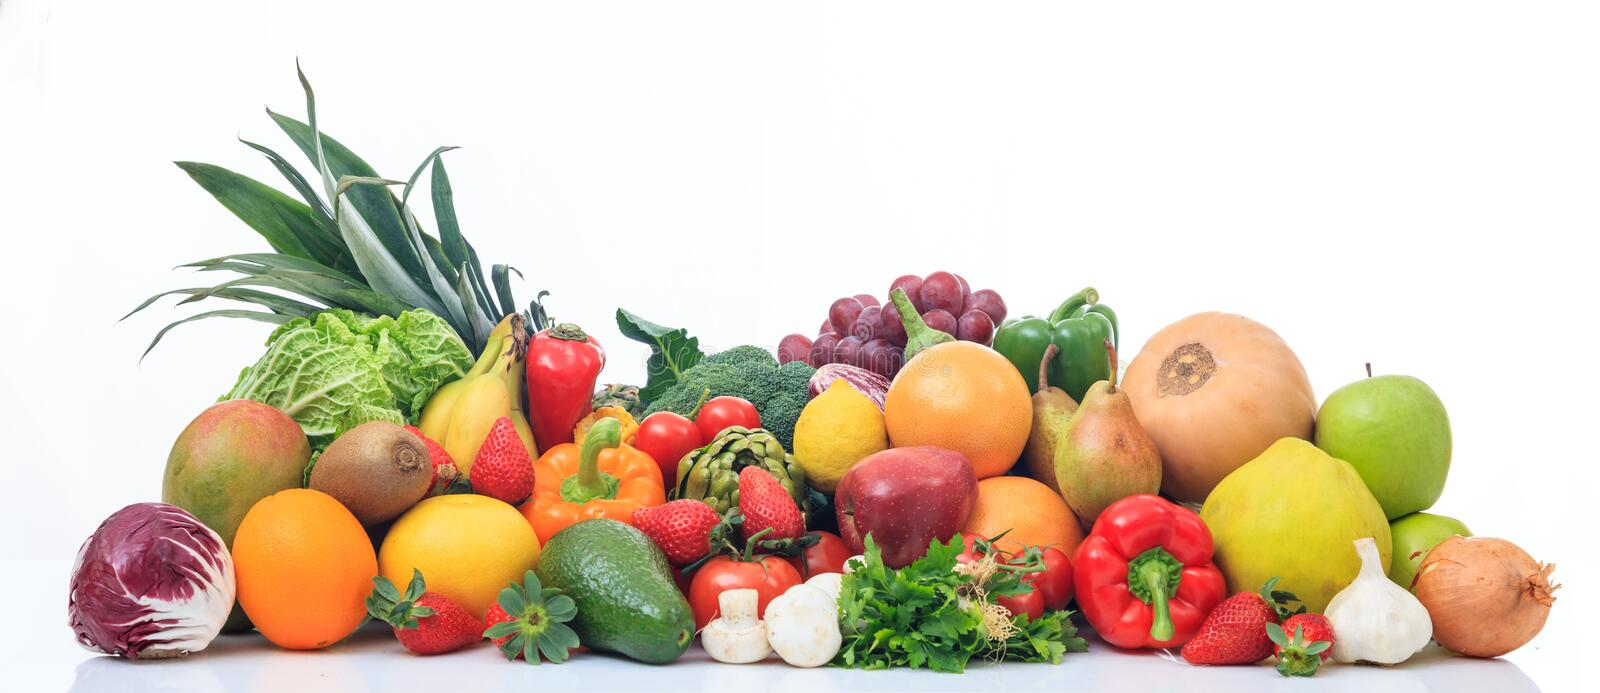 Variety of fruits and vegetables on white background. Variety of fresh fruits and vegetables on white background stock photos